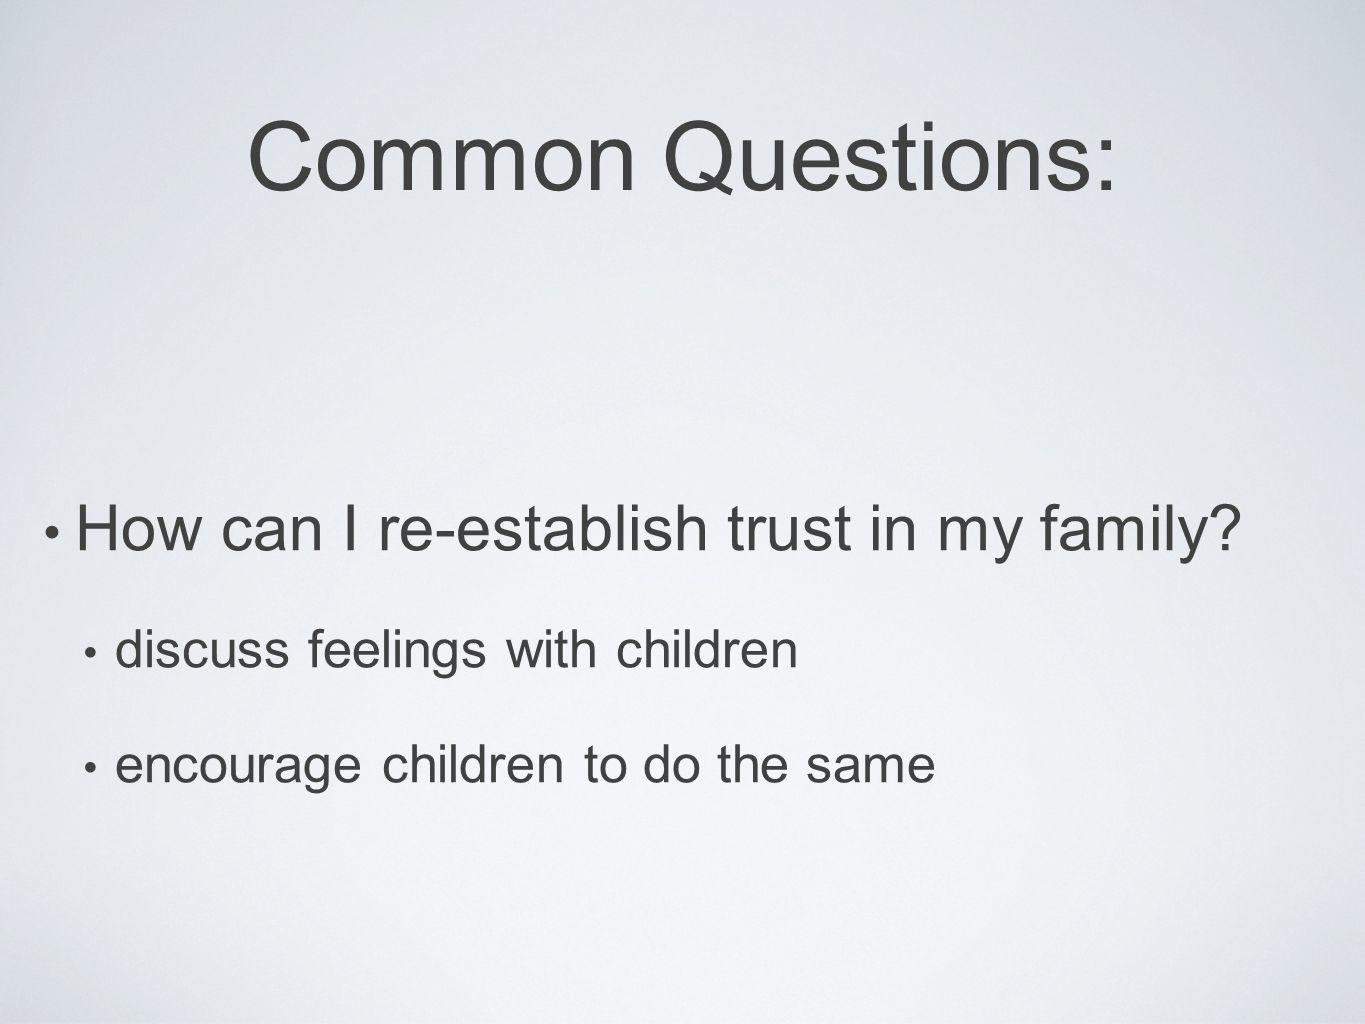 Common Questions: How can I re-establish trust in my family